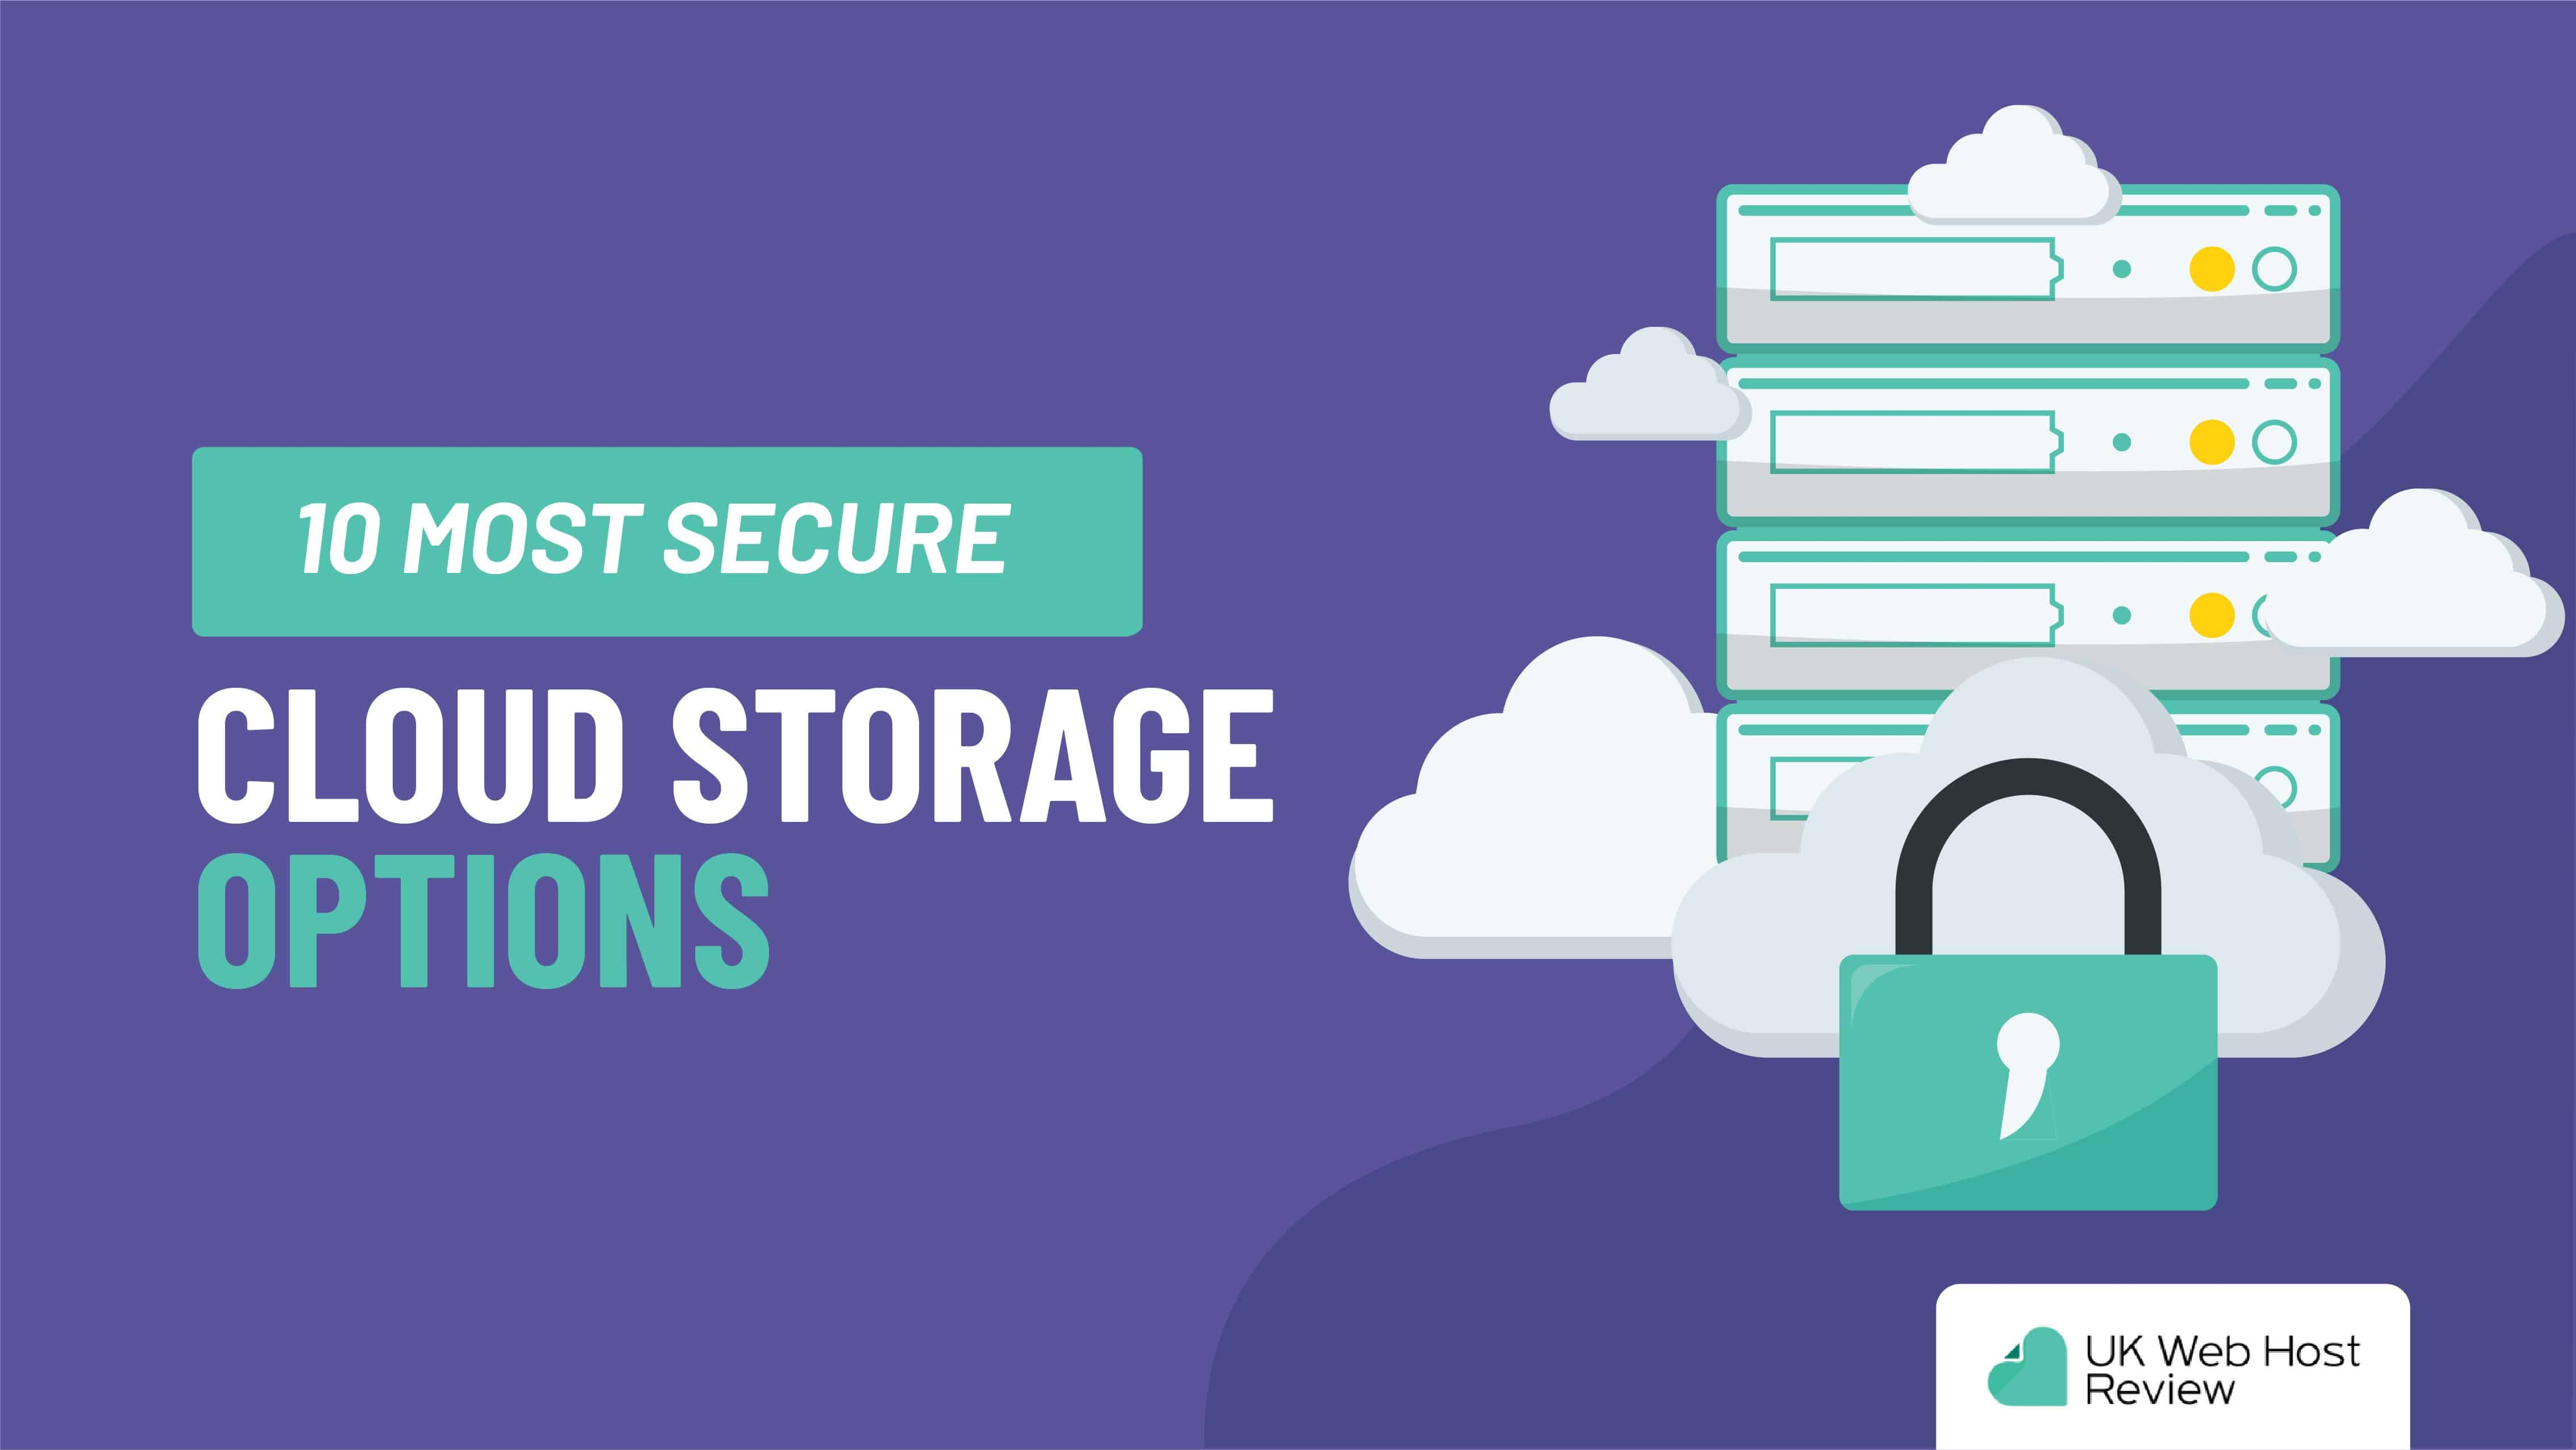 10 Most Secure Cloud Storage Options